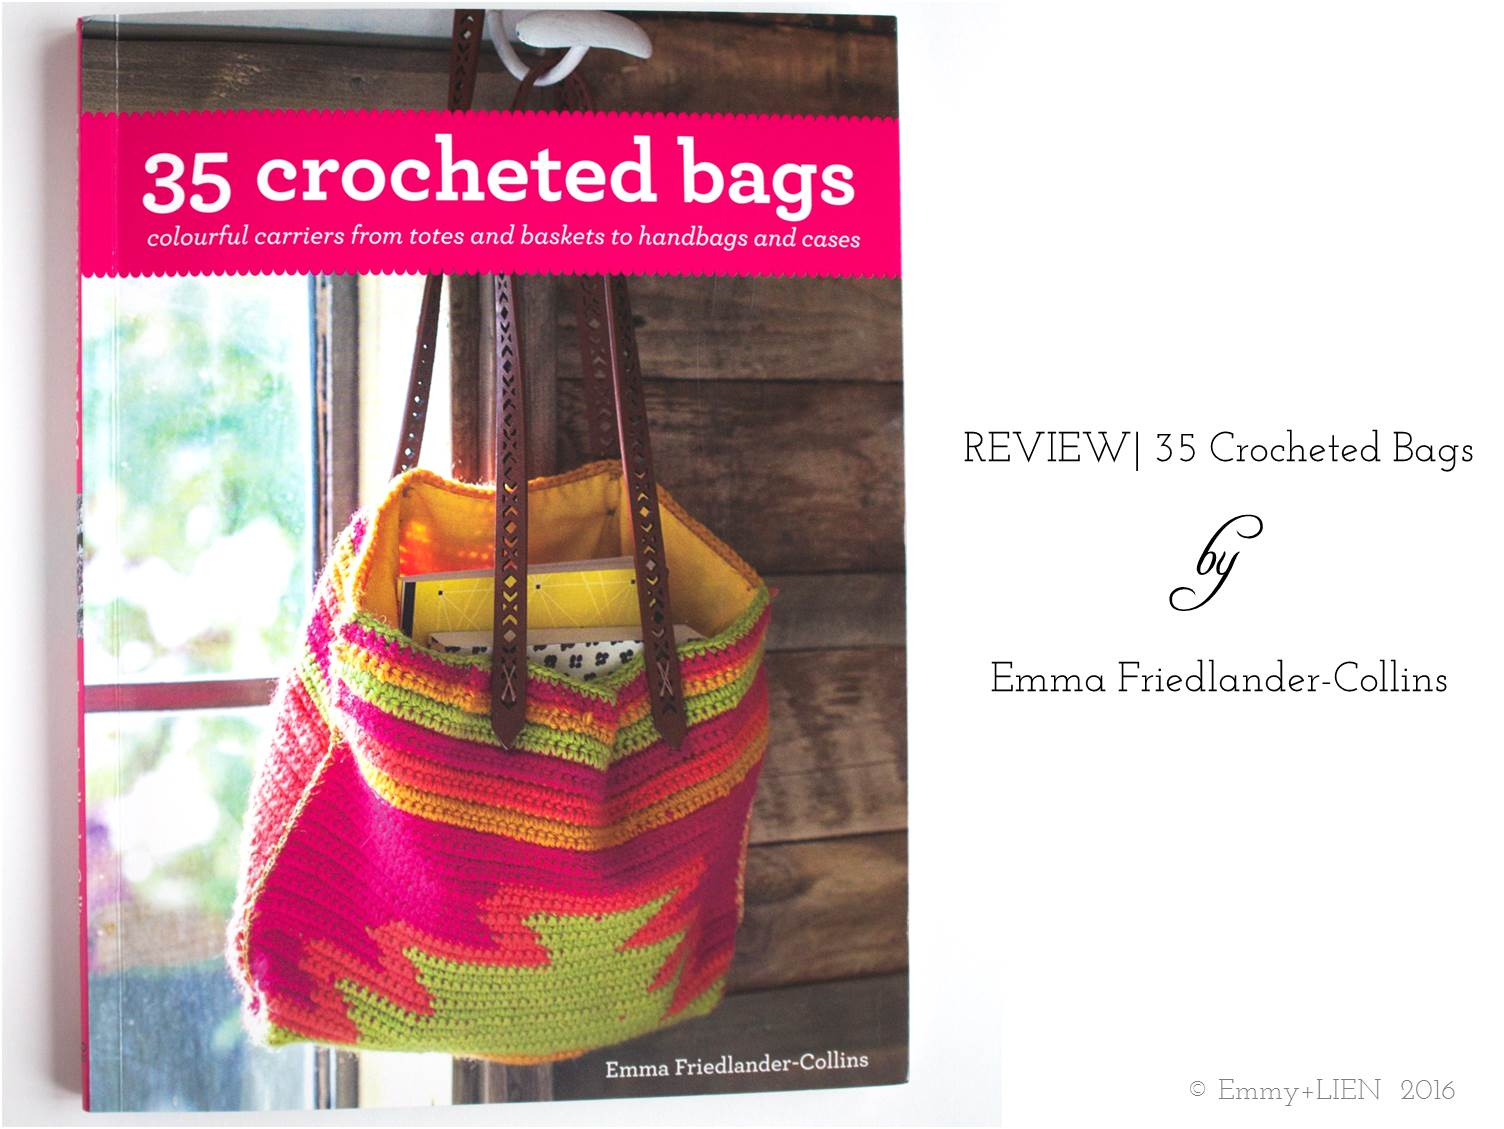 35 Crocheted Bags by Emma Friedlander-Collins | a review